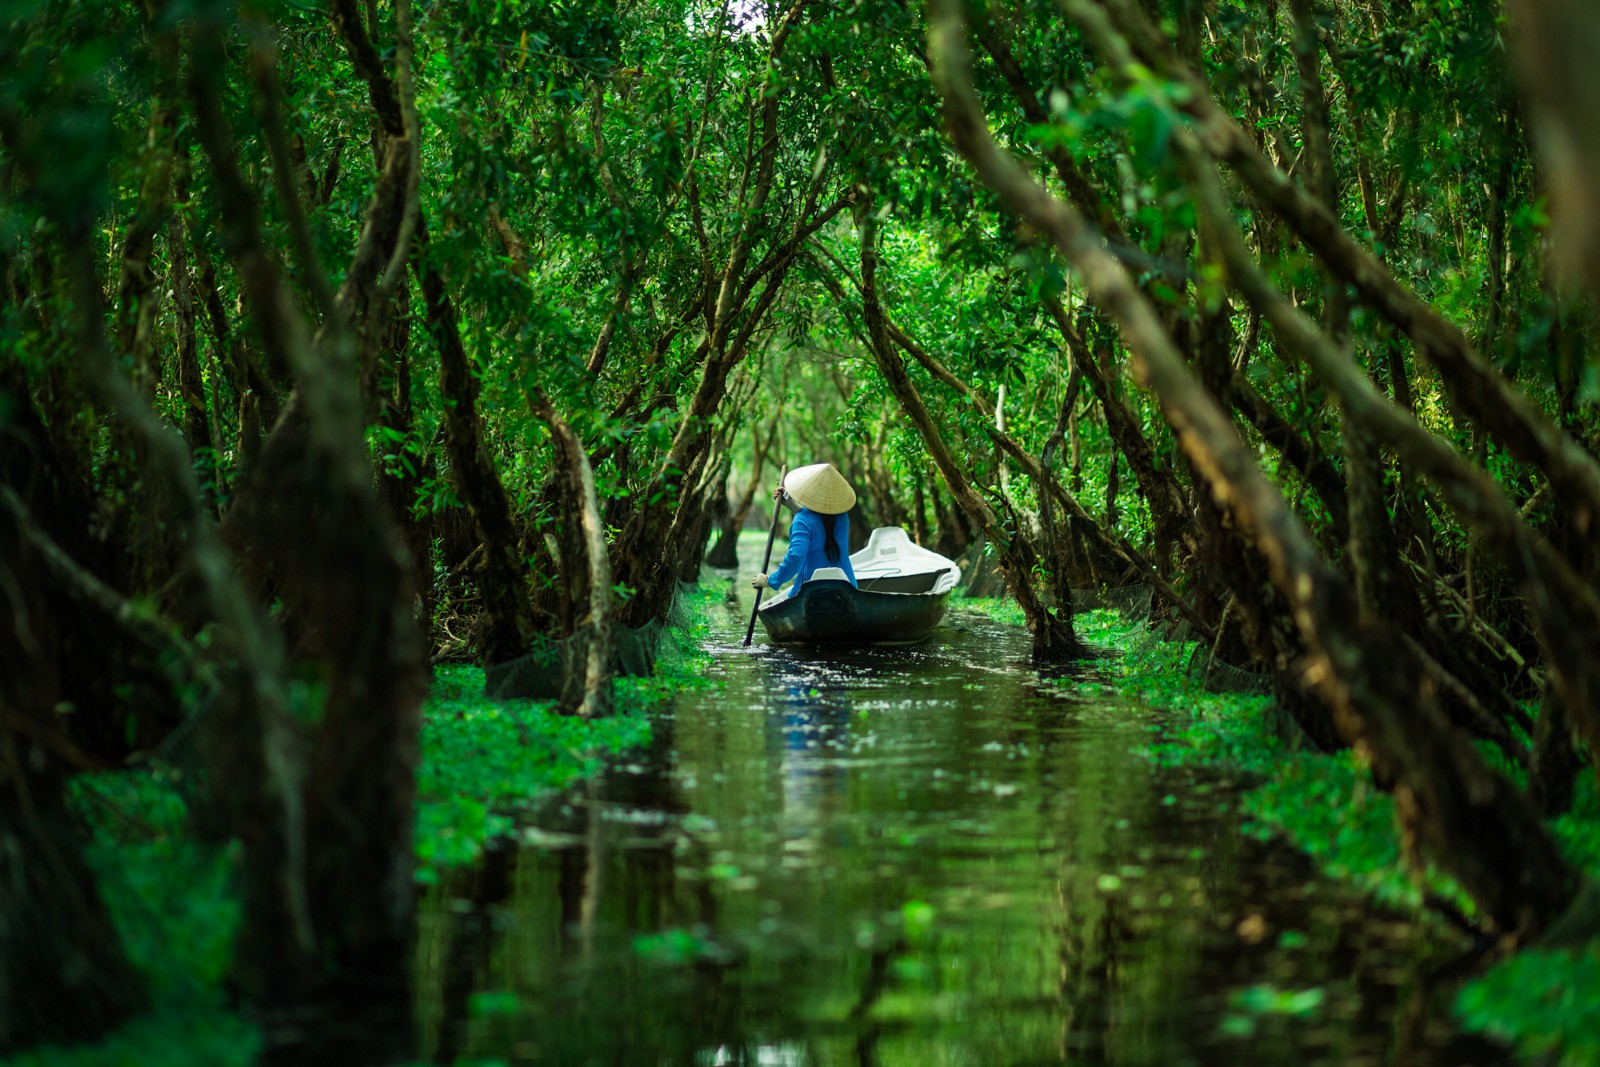 The dinghy leads tourists through narrow waterway on Mekong Delta